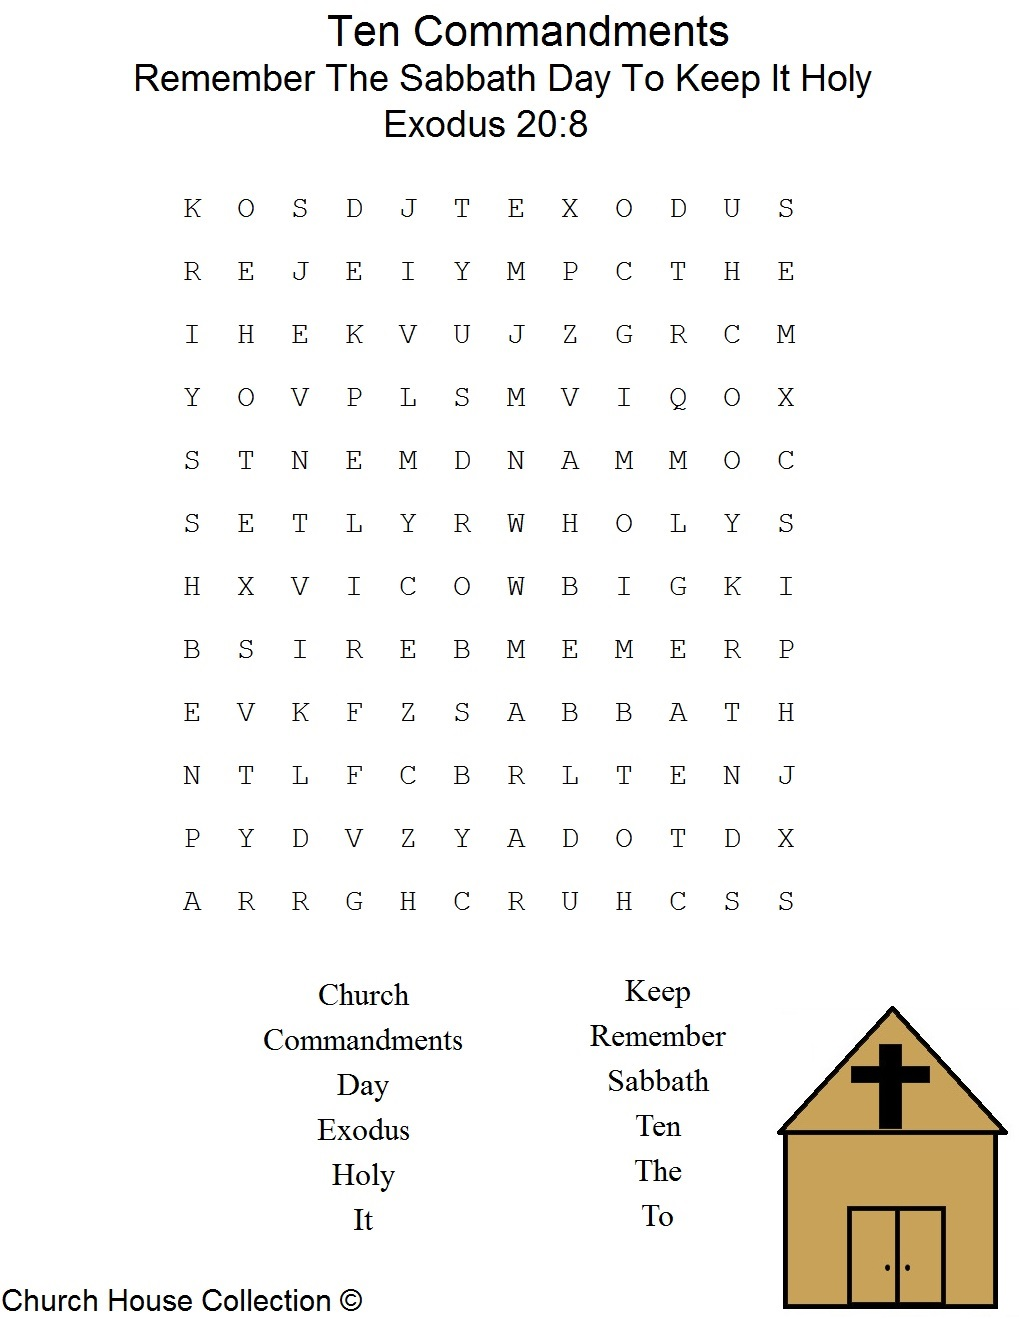 ... Sabbath Day To Keep It Holy Word Find Puzzle For The Ten Commandments